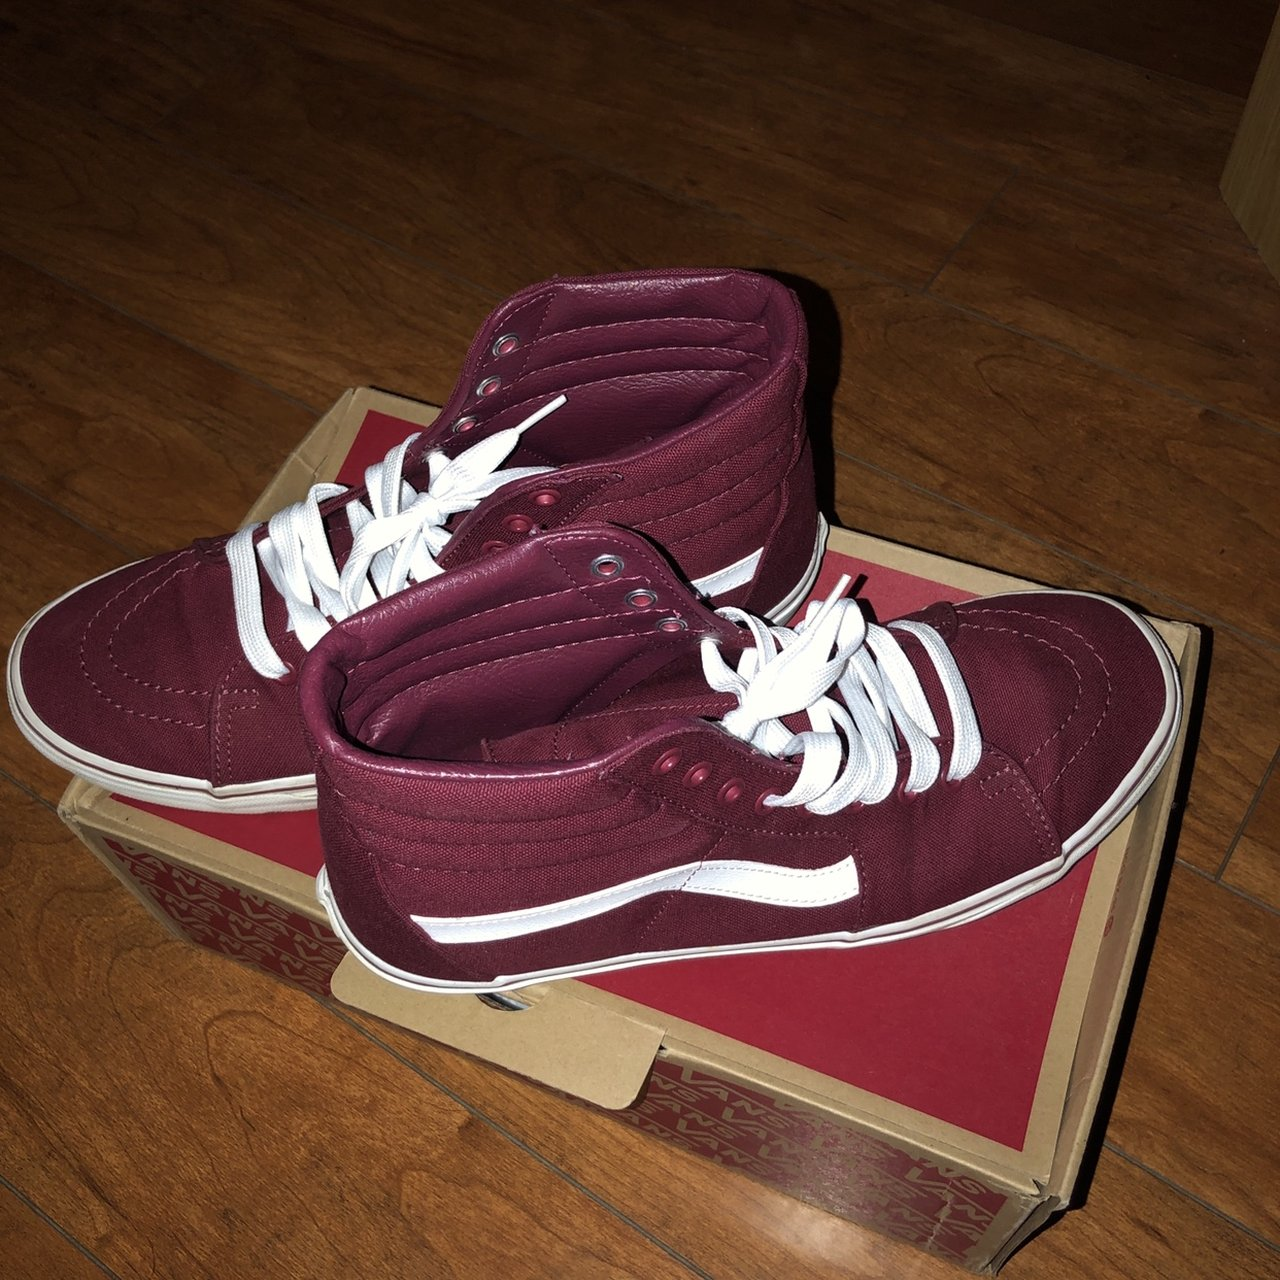 a2e50dc5a6 Burgundy sk8-hi vans. Worn less than 5 times. Comes with and - Depop